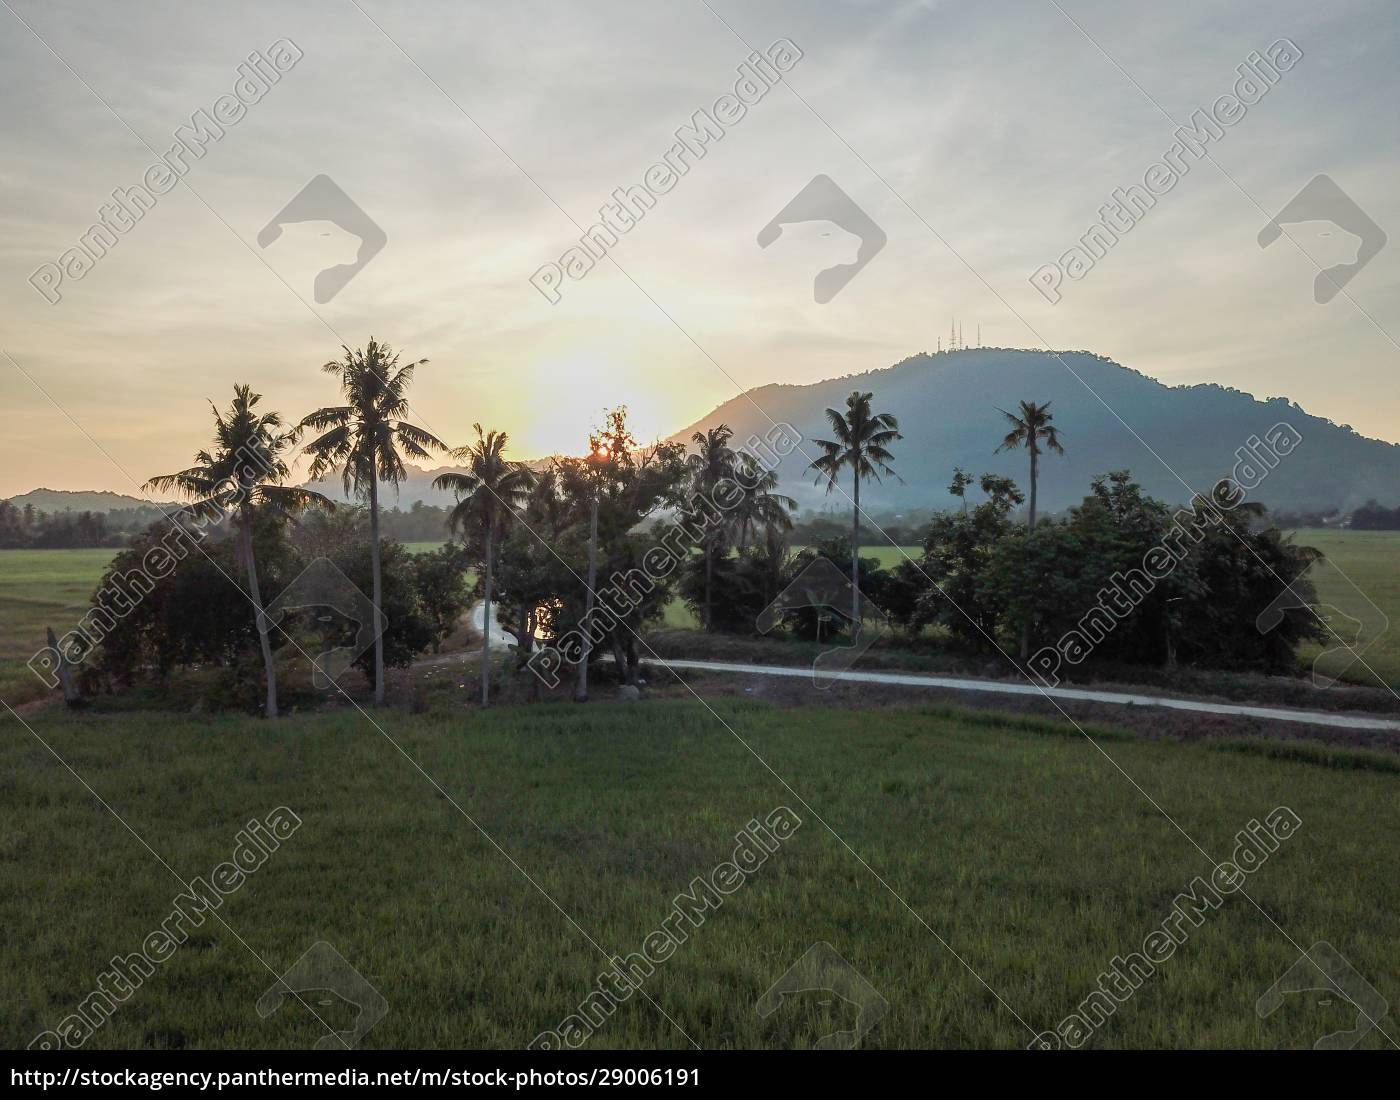 green, field, with, coconut, trees - 29006191